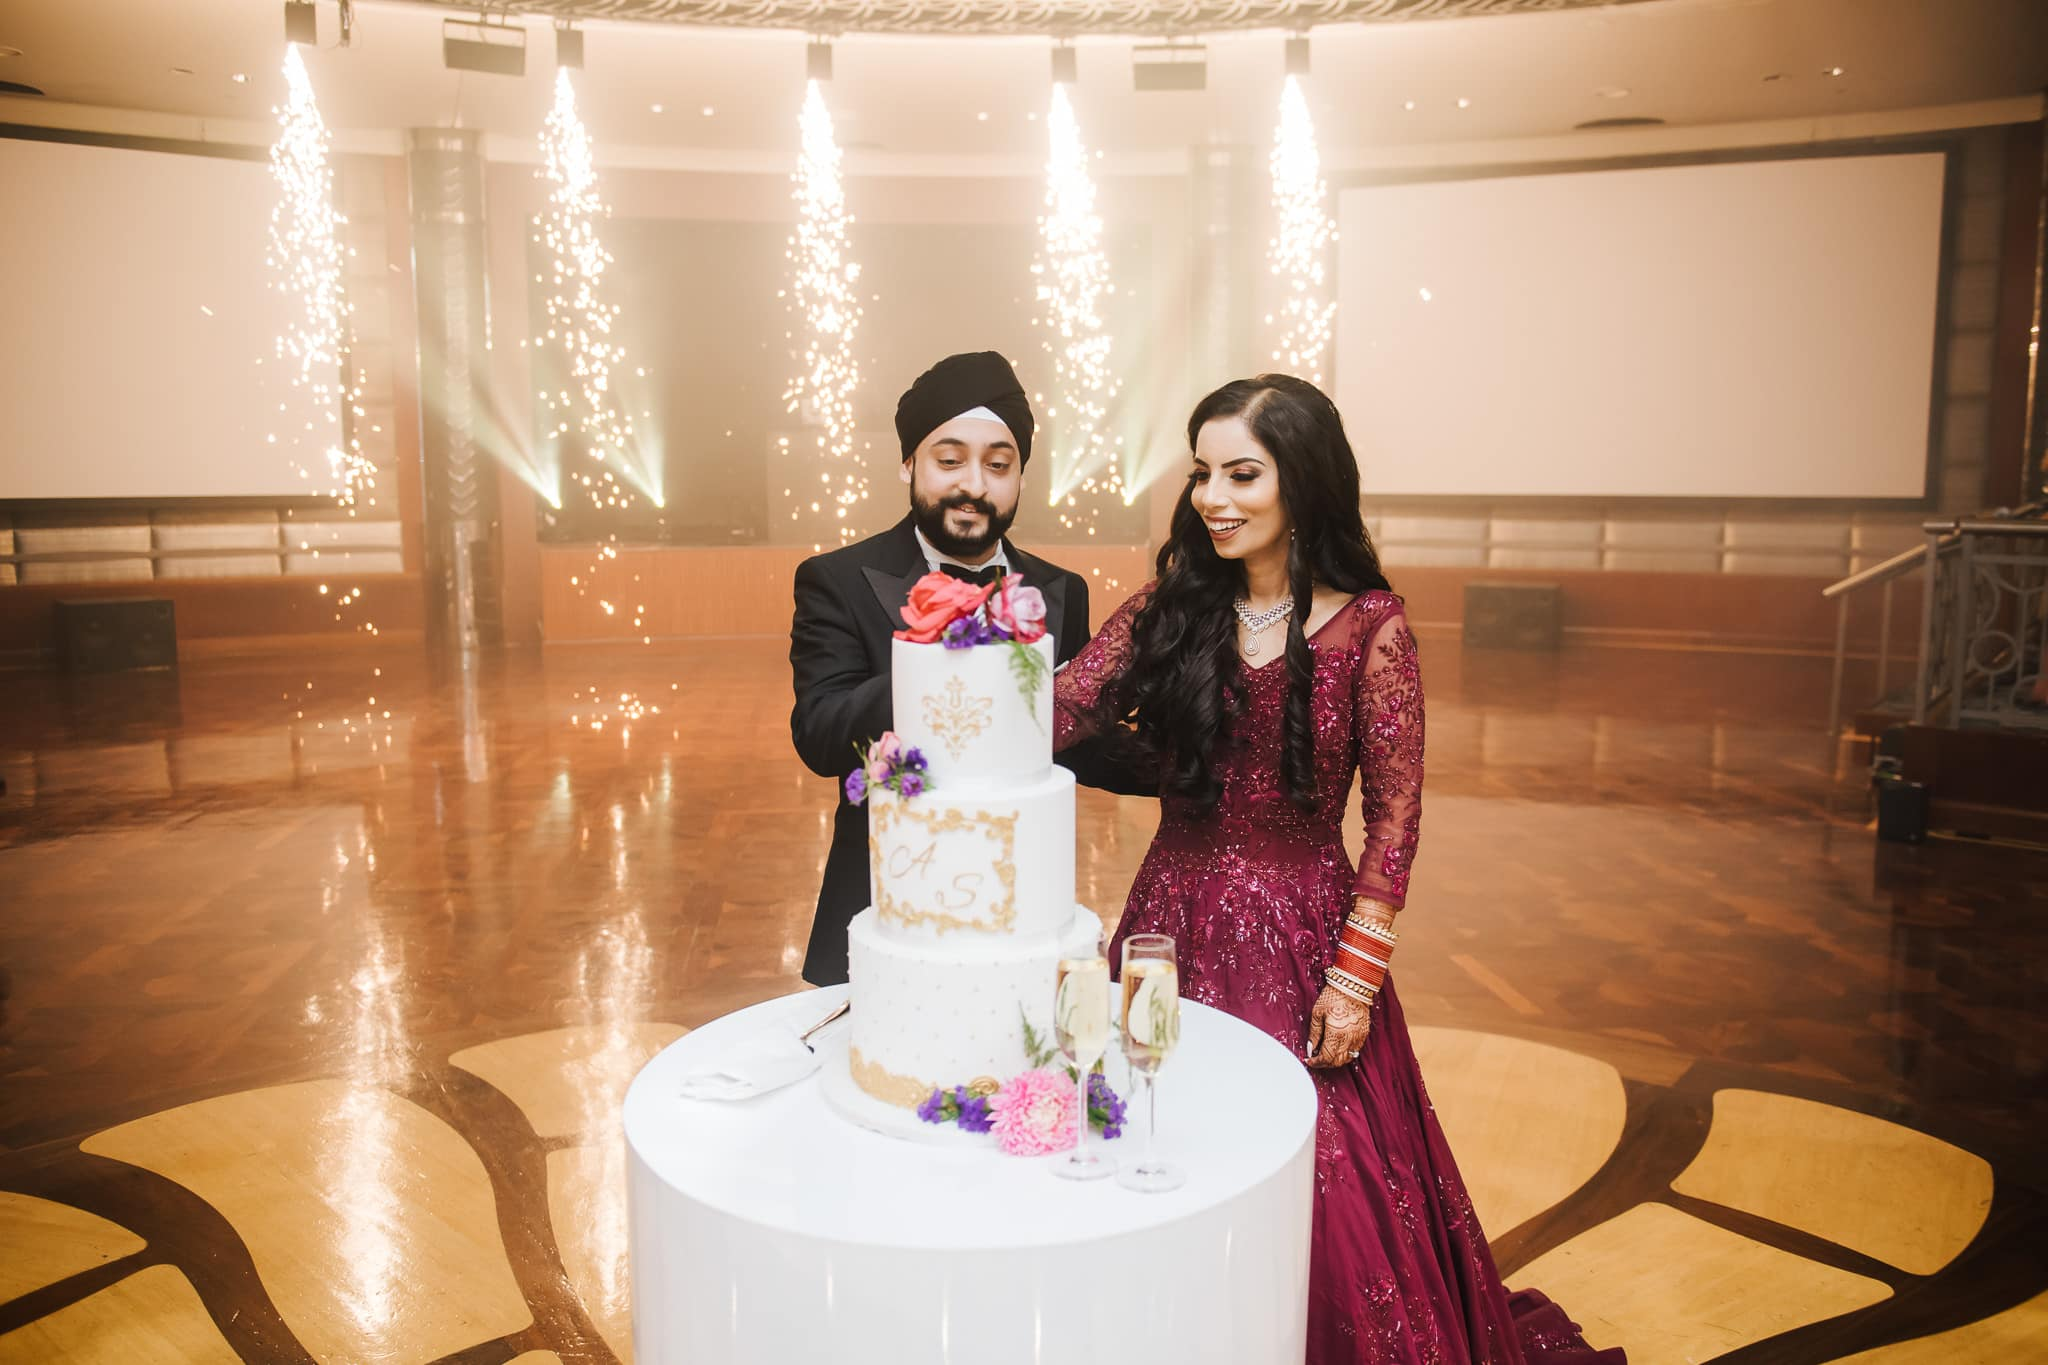 Simran and Anmol's vibrant Sikh wedding celebration in Melbourne came to a close with an opulent wedding reception party held at Park Hyatt, Melbourne. Groom Anmol, was completely in his element, with impressive LED screens, pyrotechnics plus more.